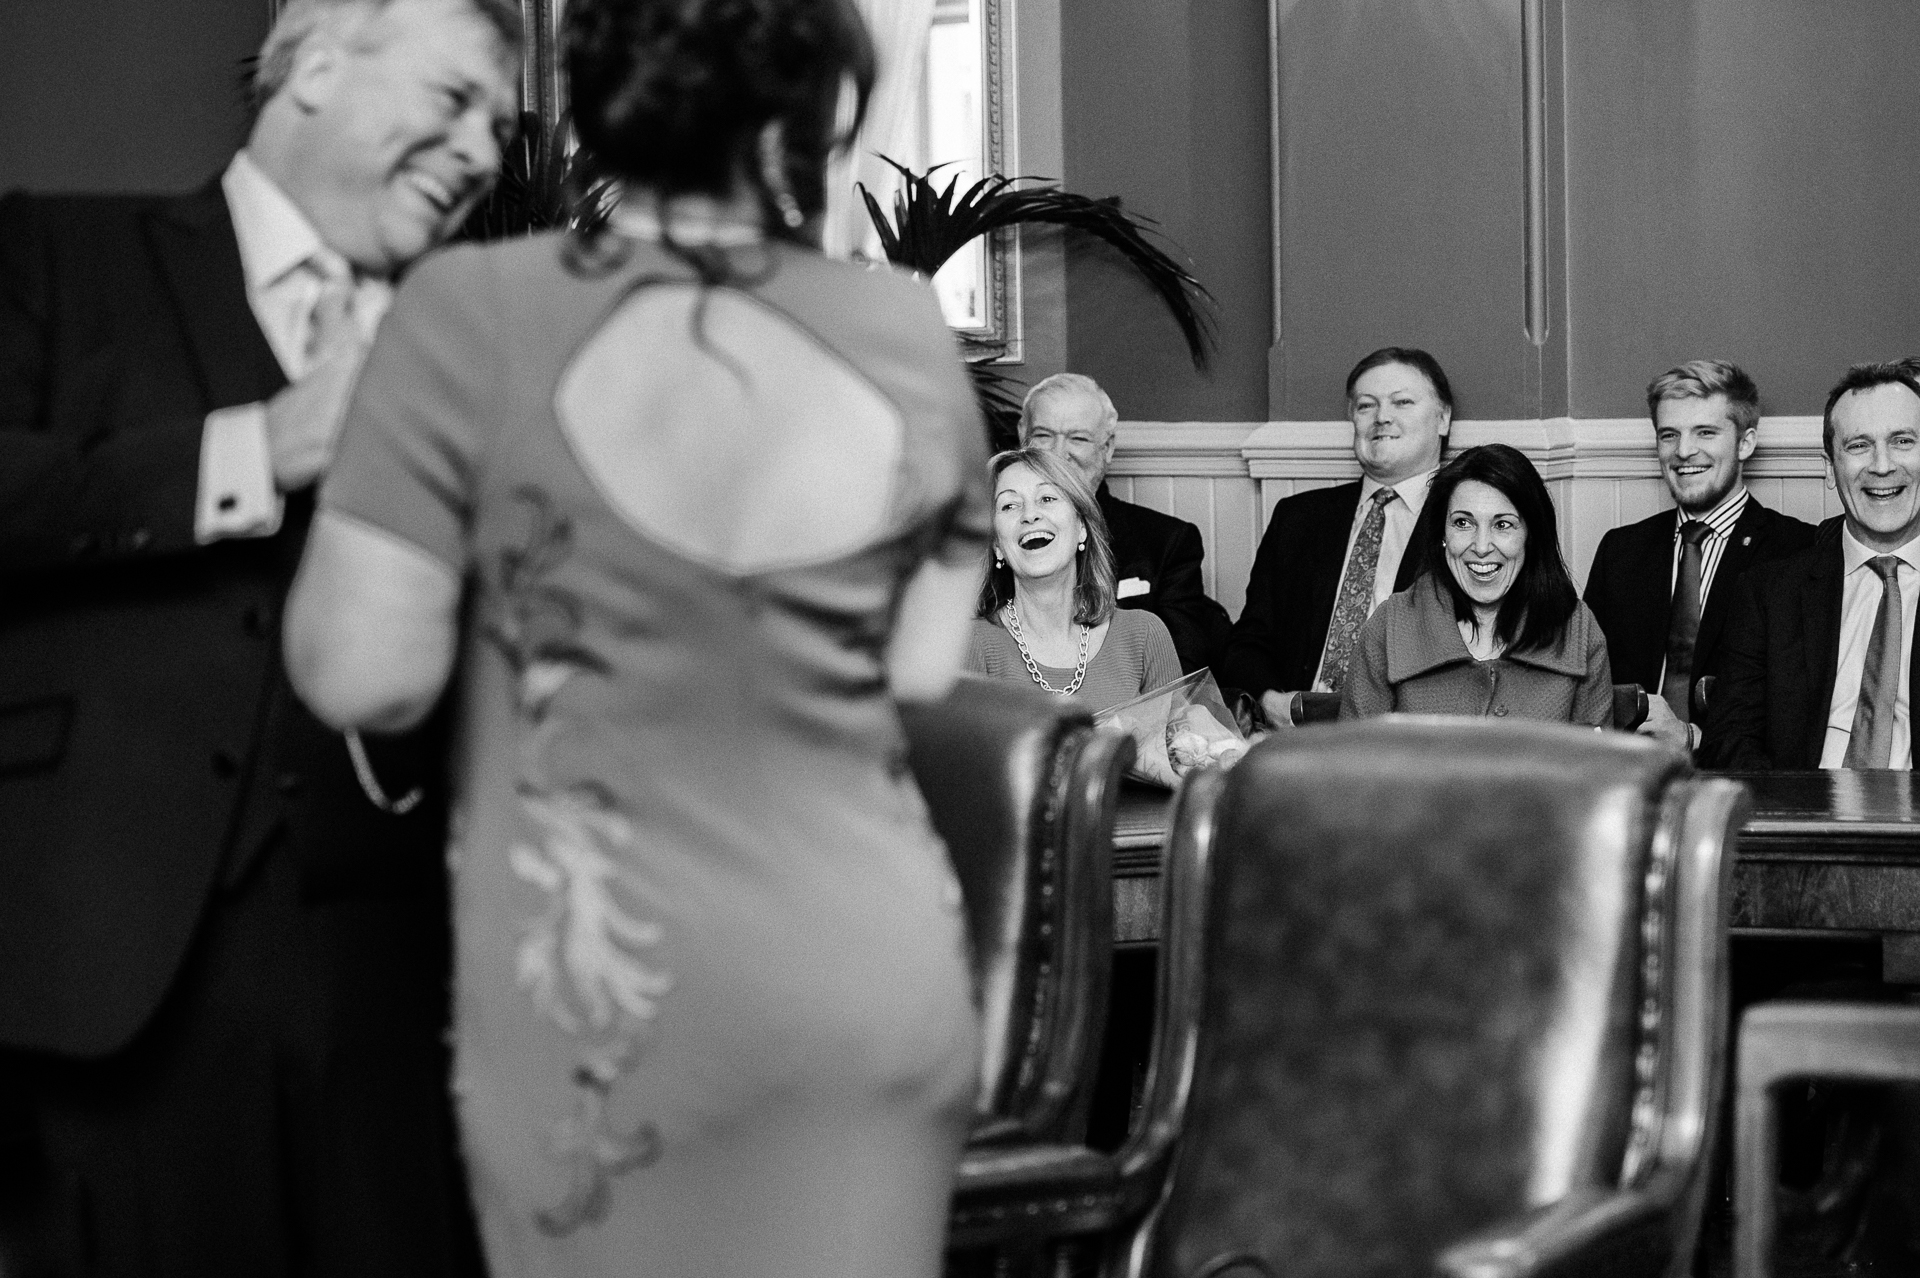 Brighton Town Hall, UK Elopement Ceremony Image | a happy and relaxed ceremony